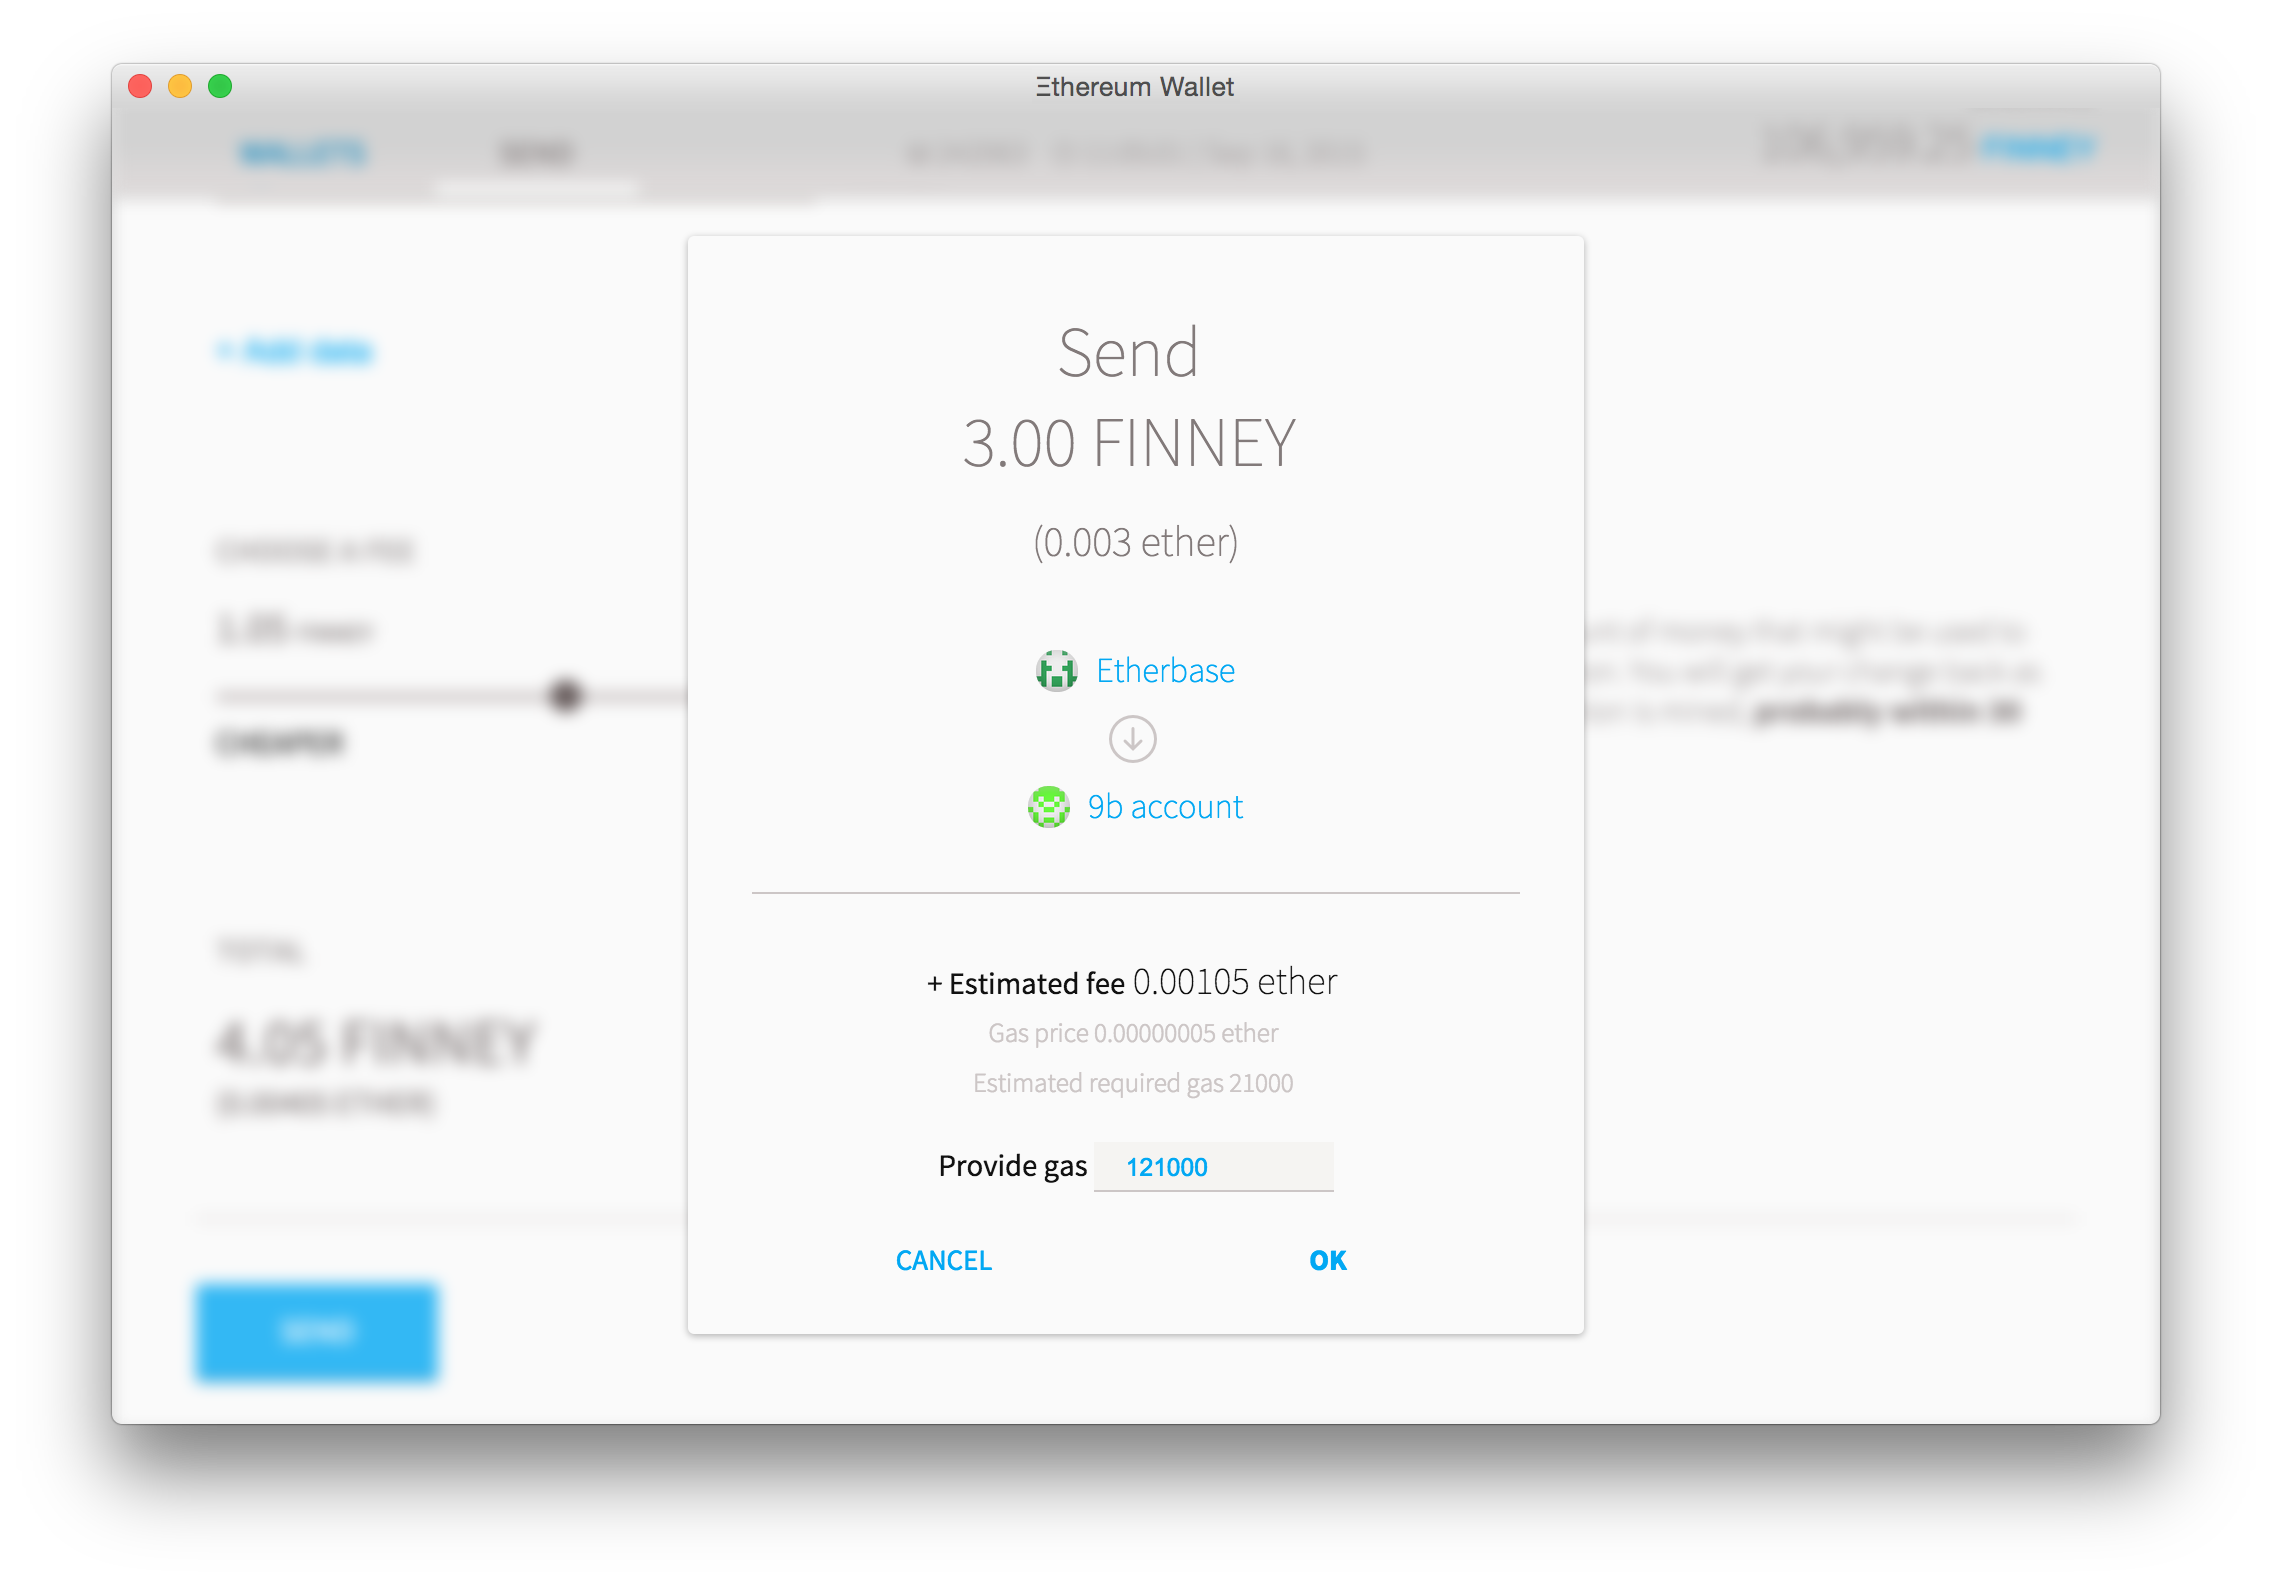 Wallet - sending a transaction